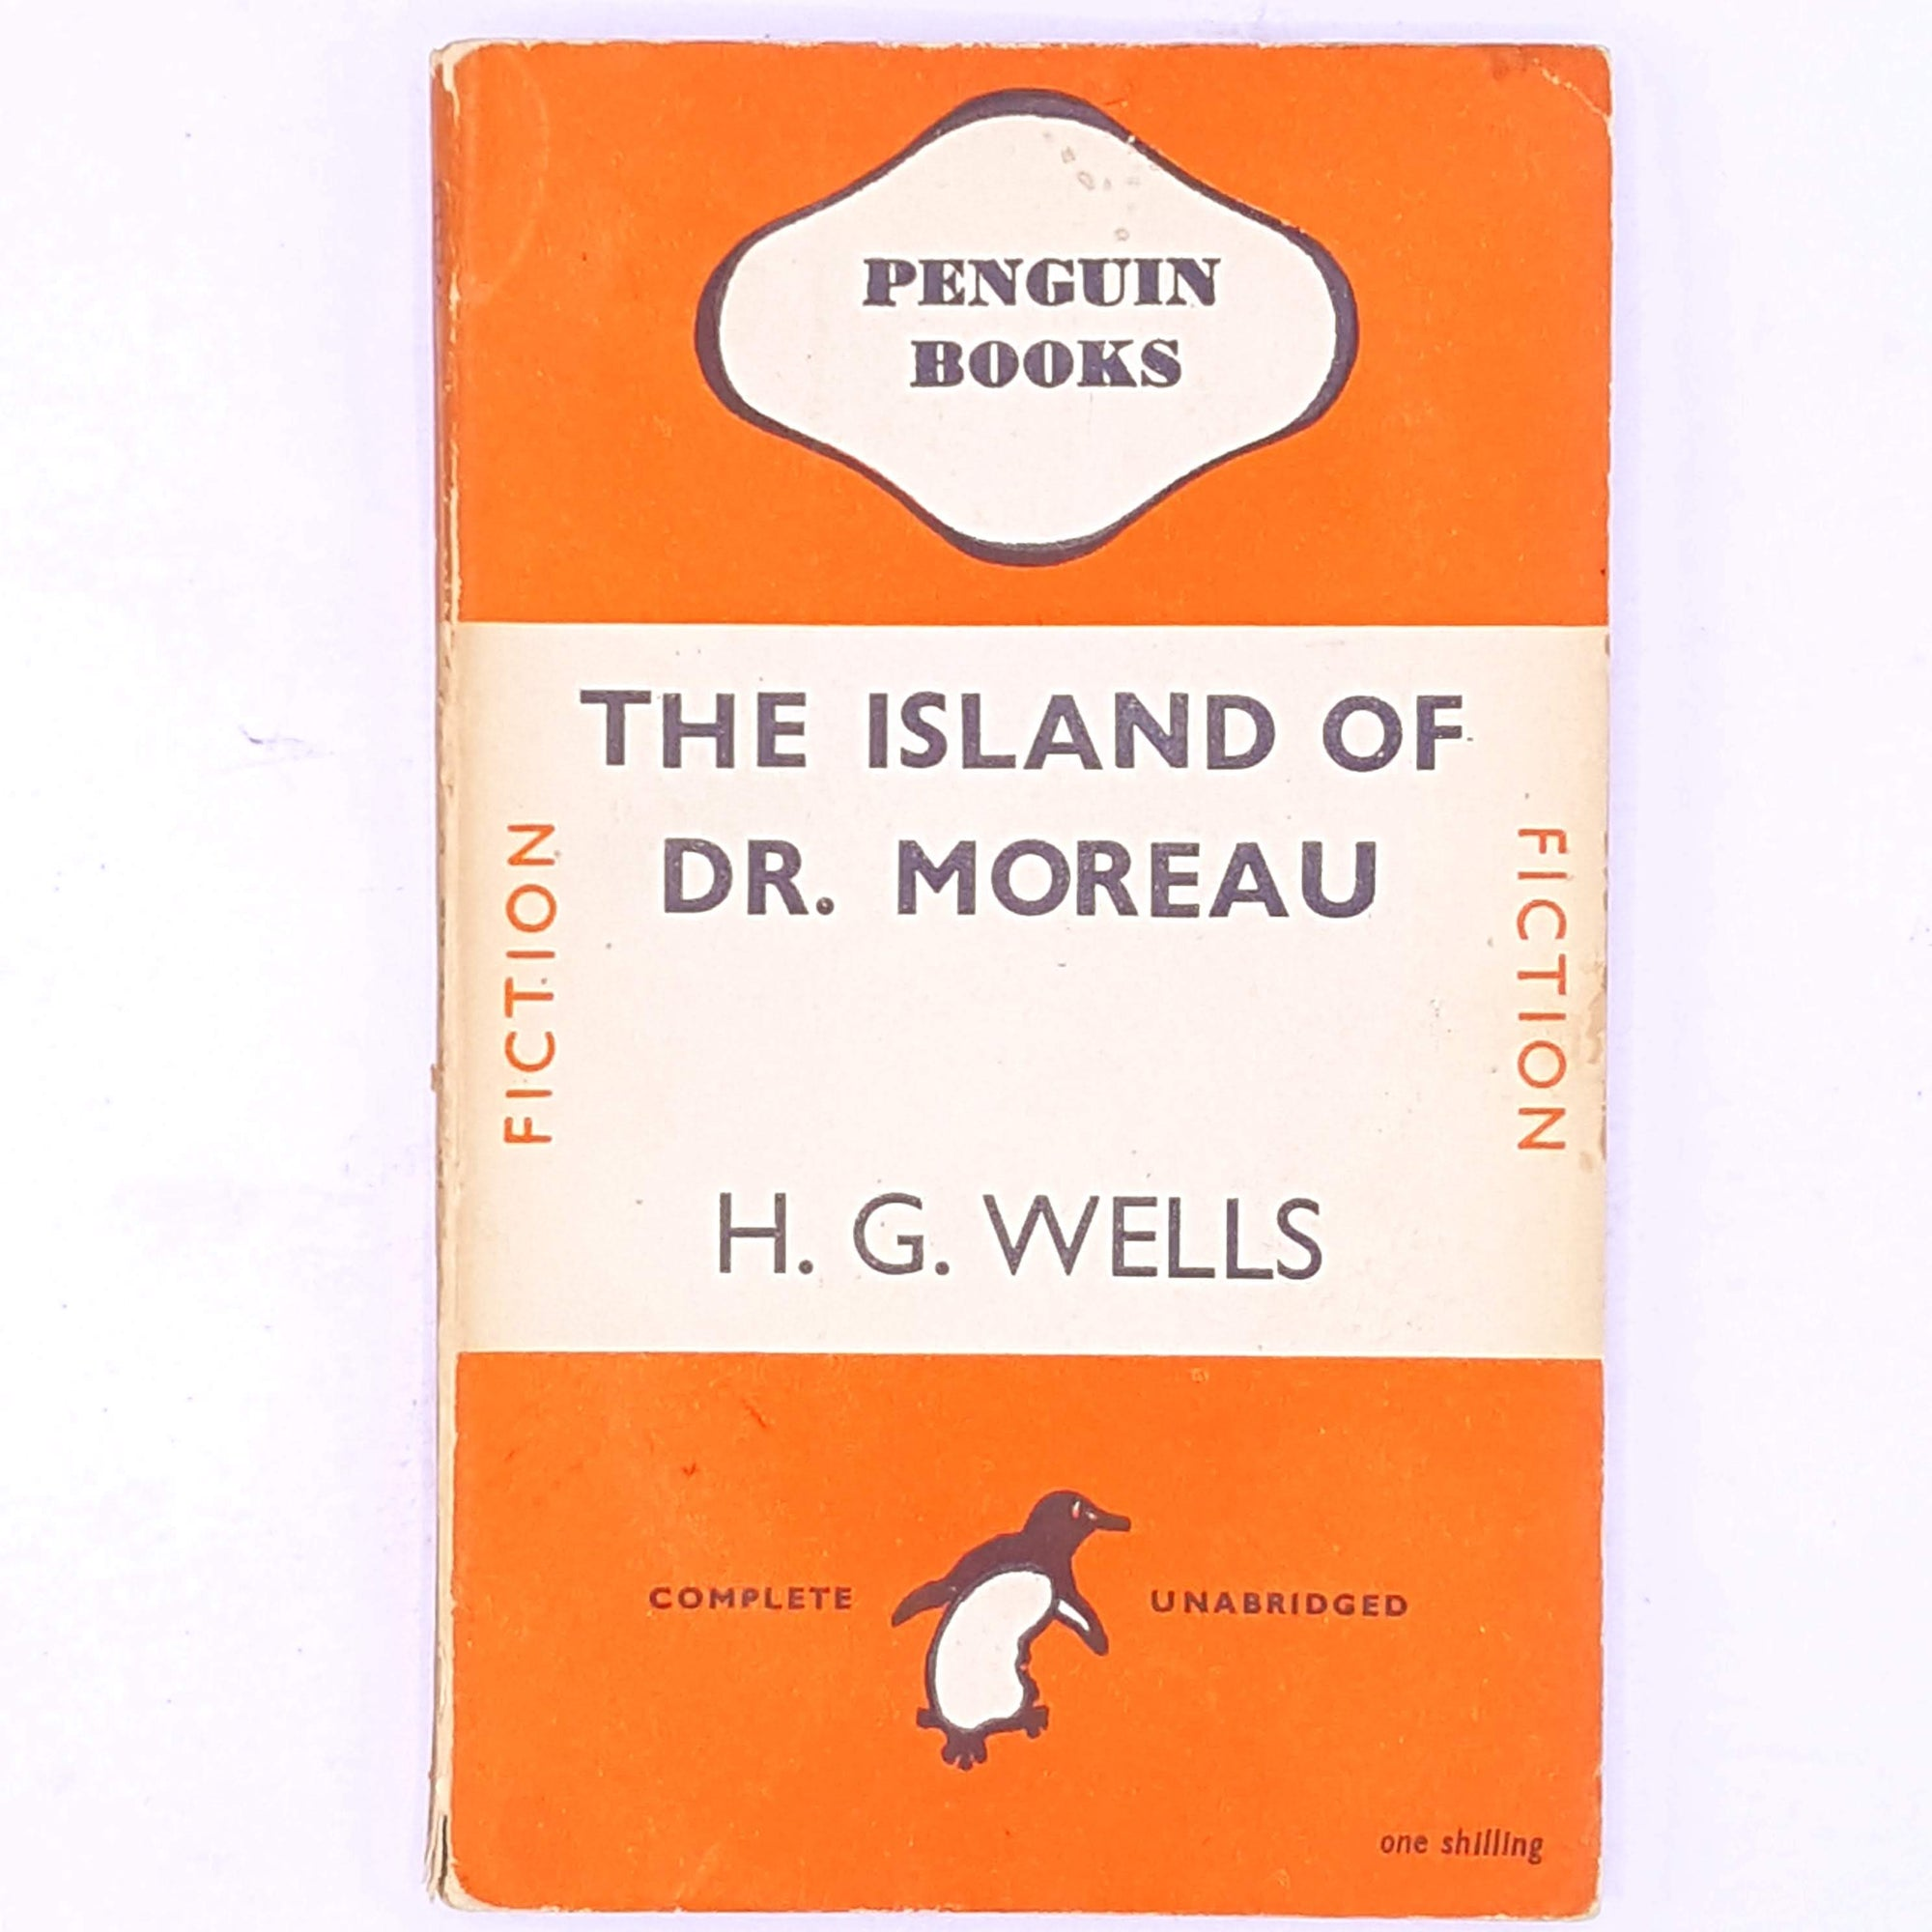 H.G. Wells, The Island Of Dr. Moreau, Penguin, 1946